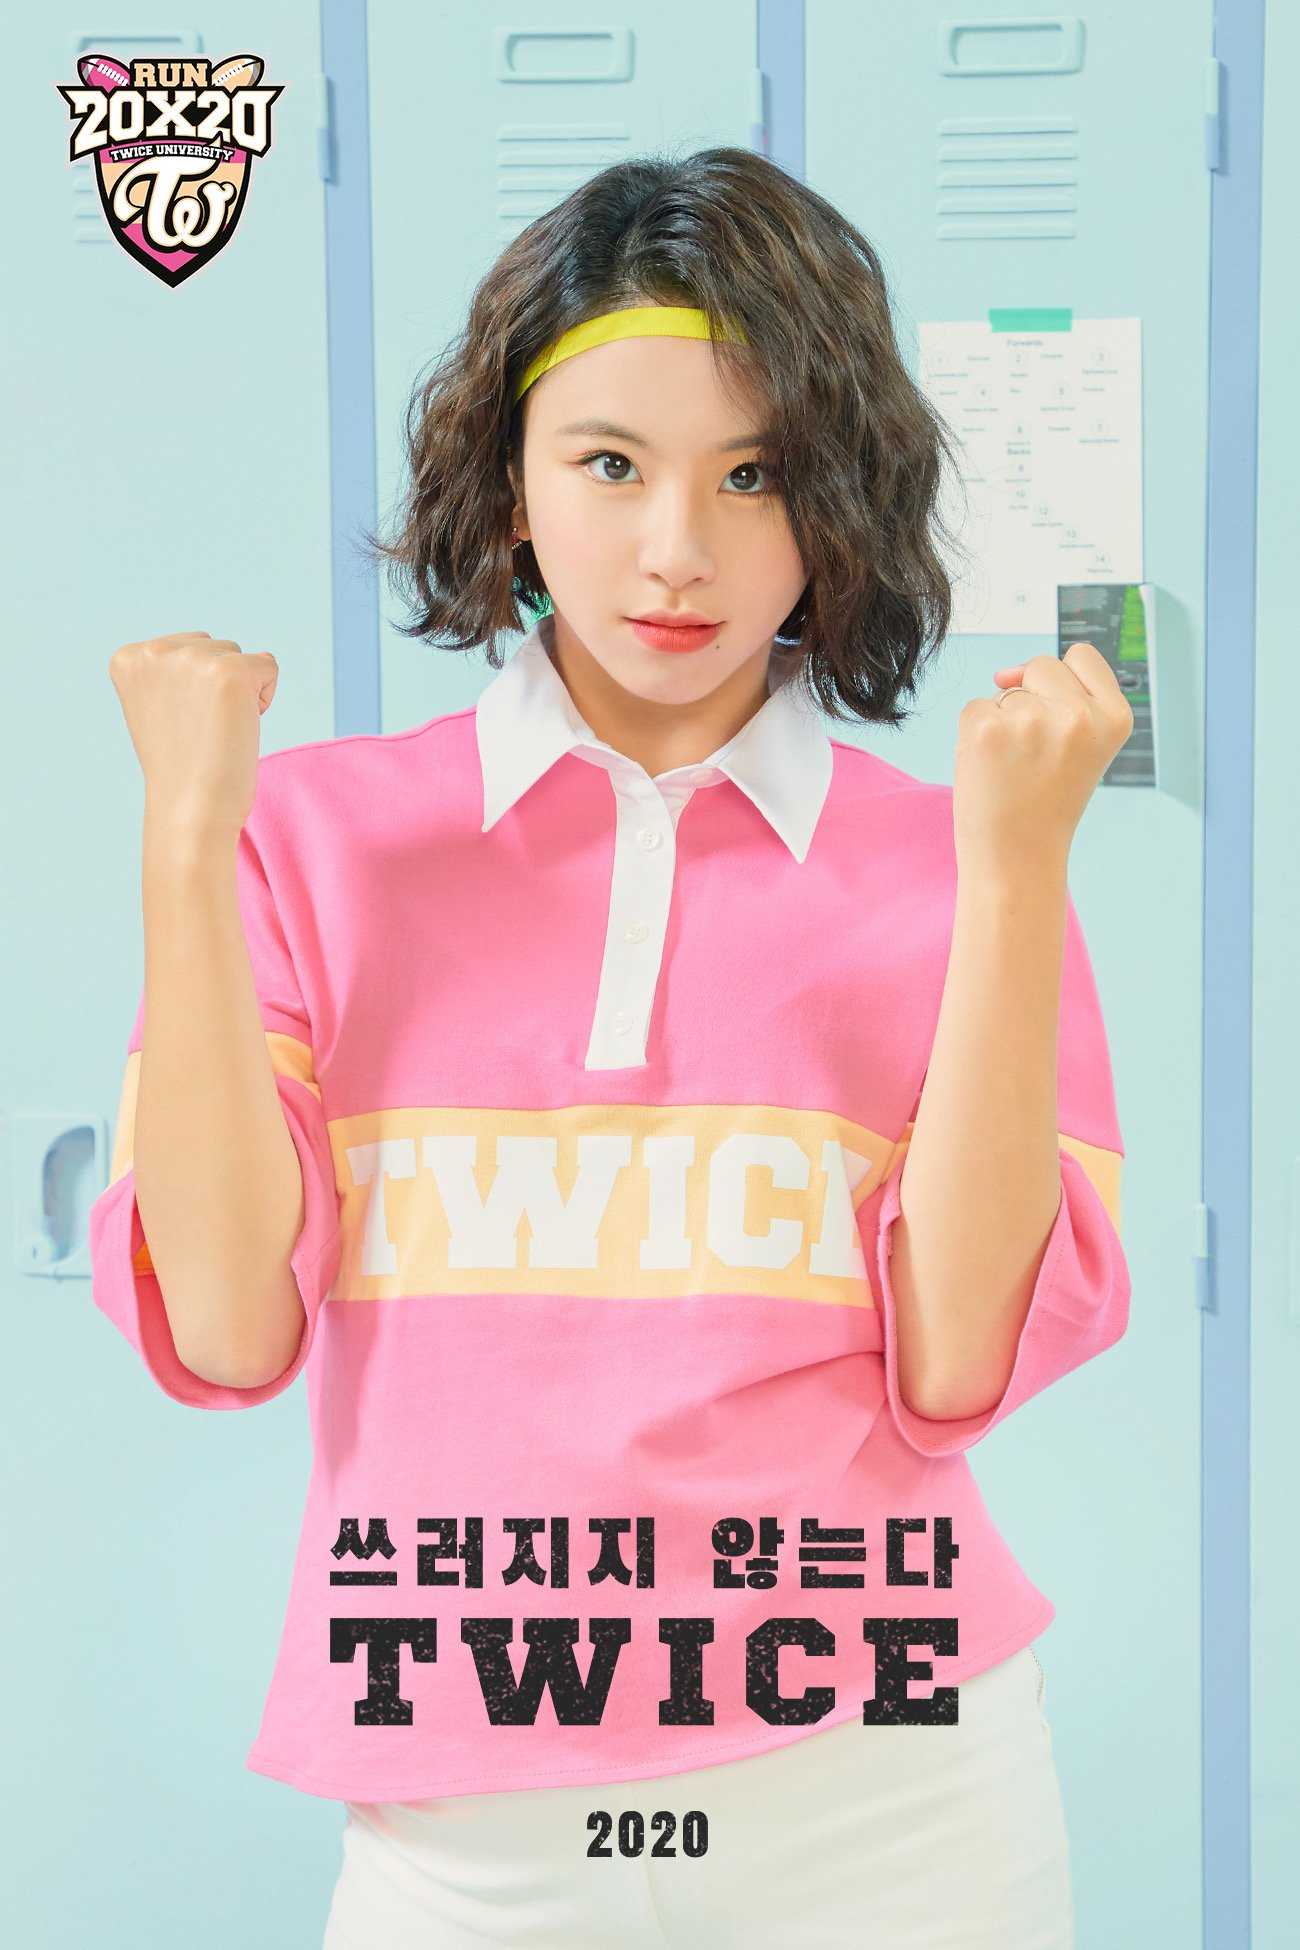 TWICE Season's Greetings 2020 Twice University Rugby Team Chaeyoung